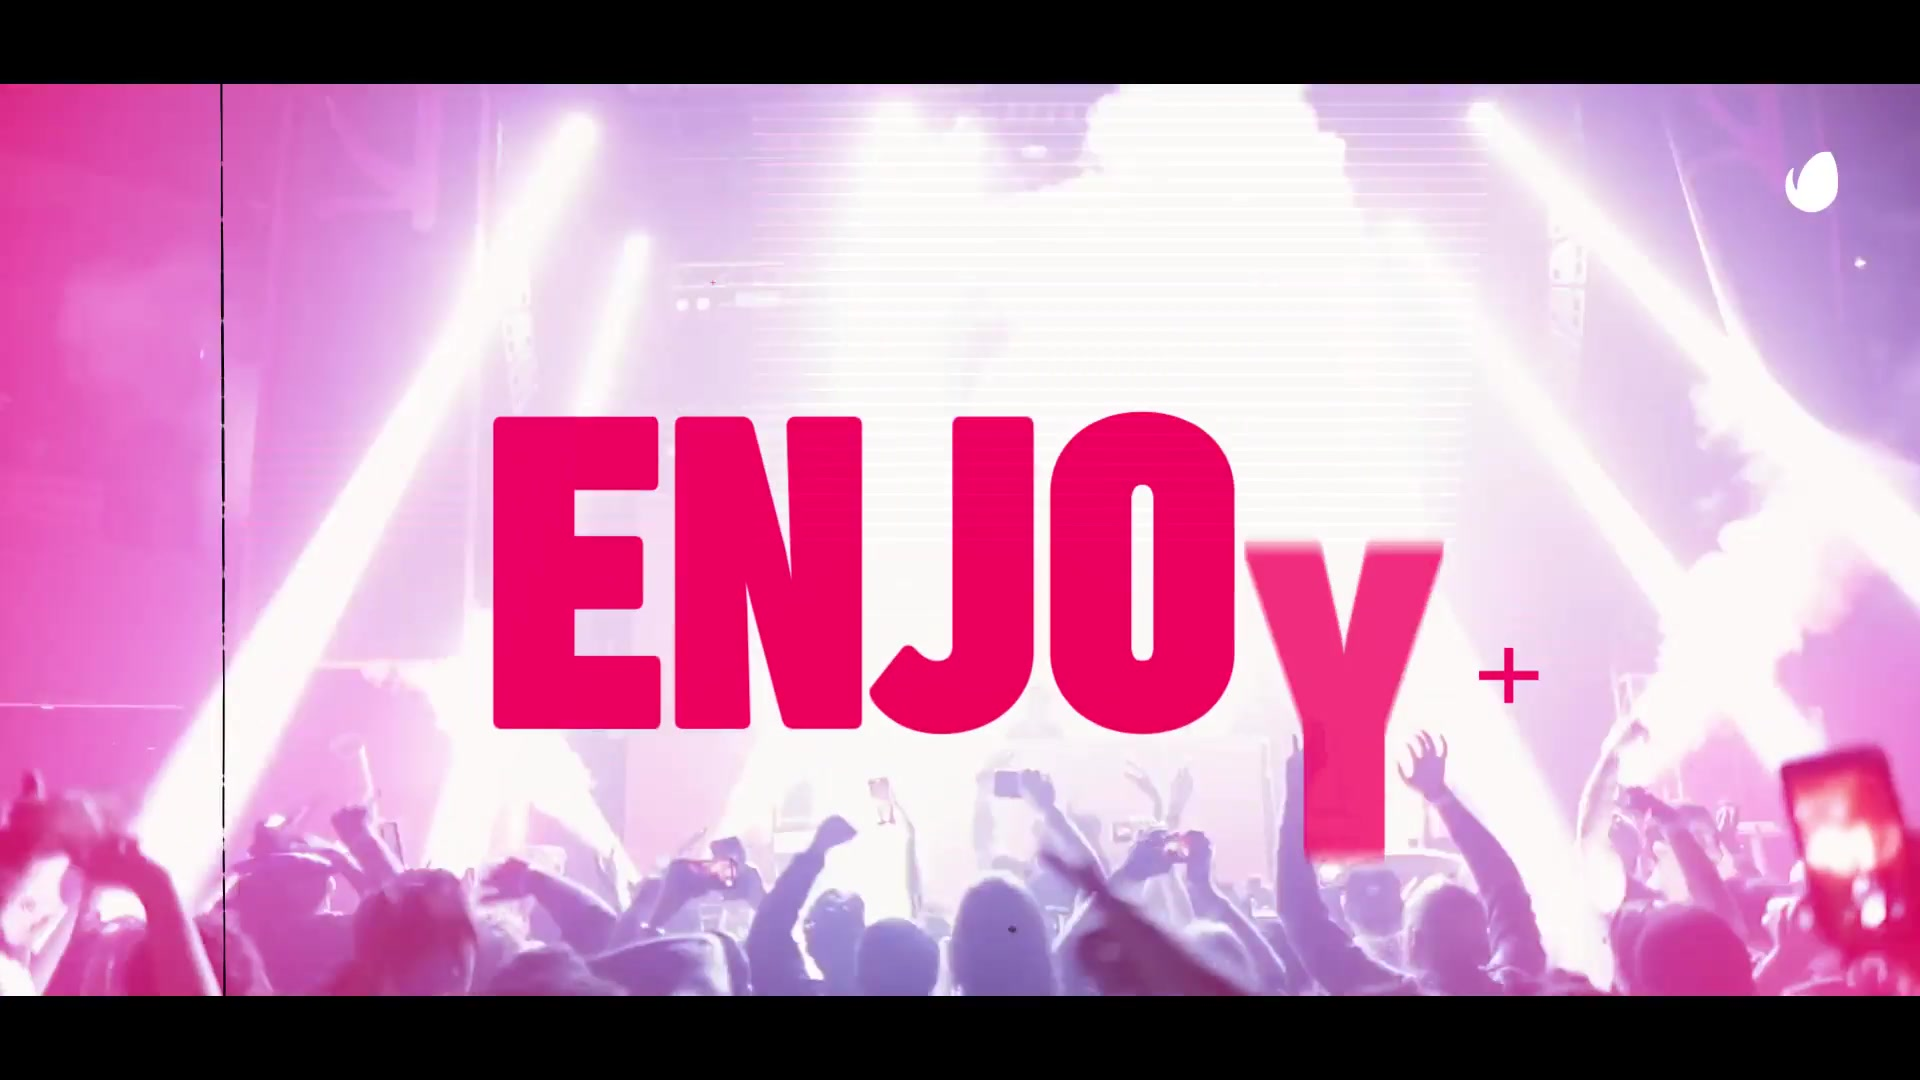 Music Event Promo Festival Opener Videohive 27930012 After Effects Image 8